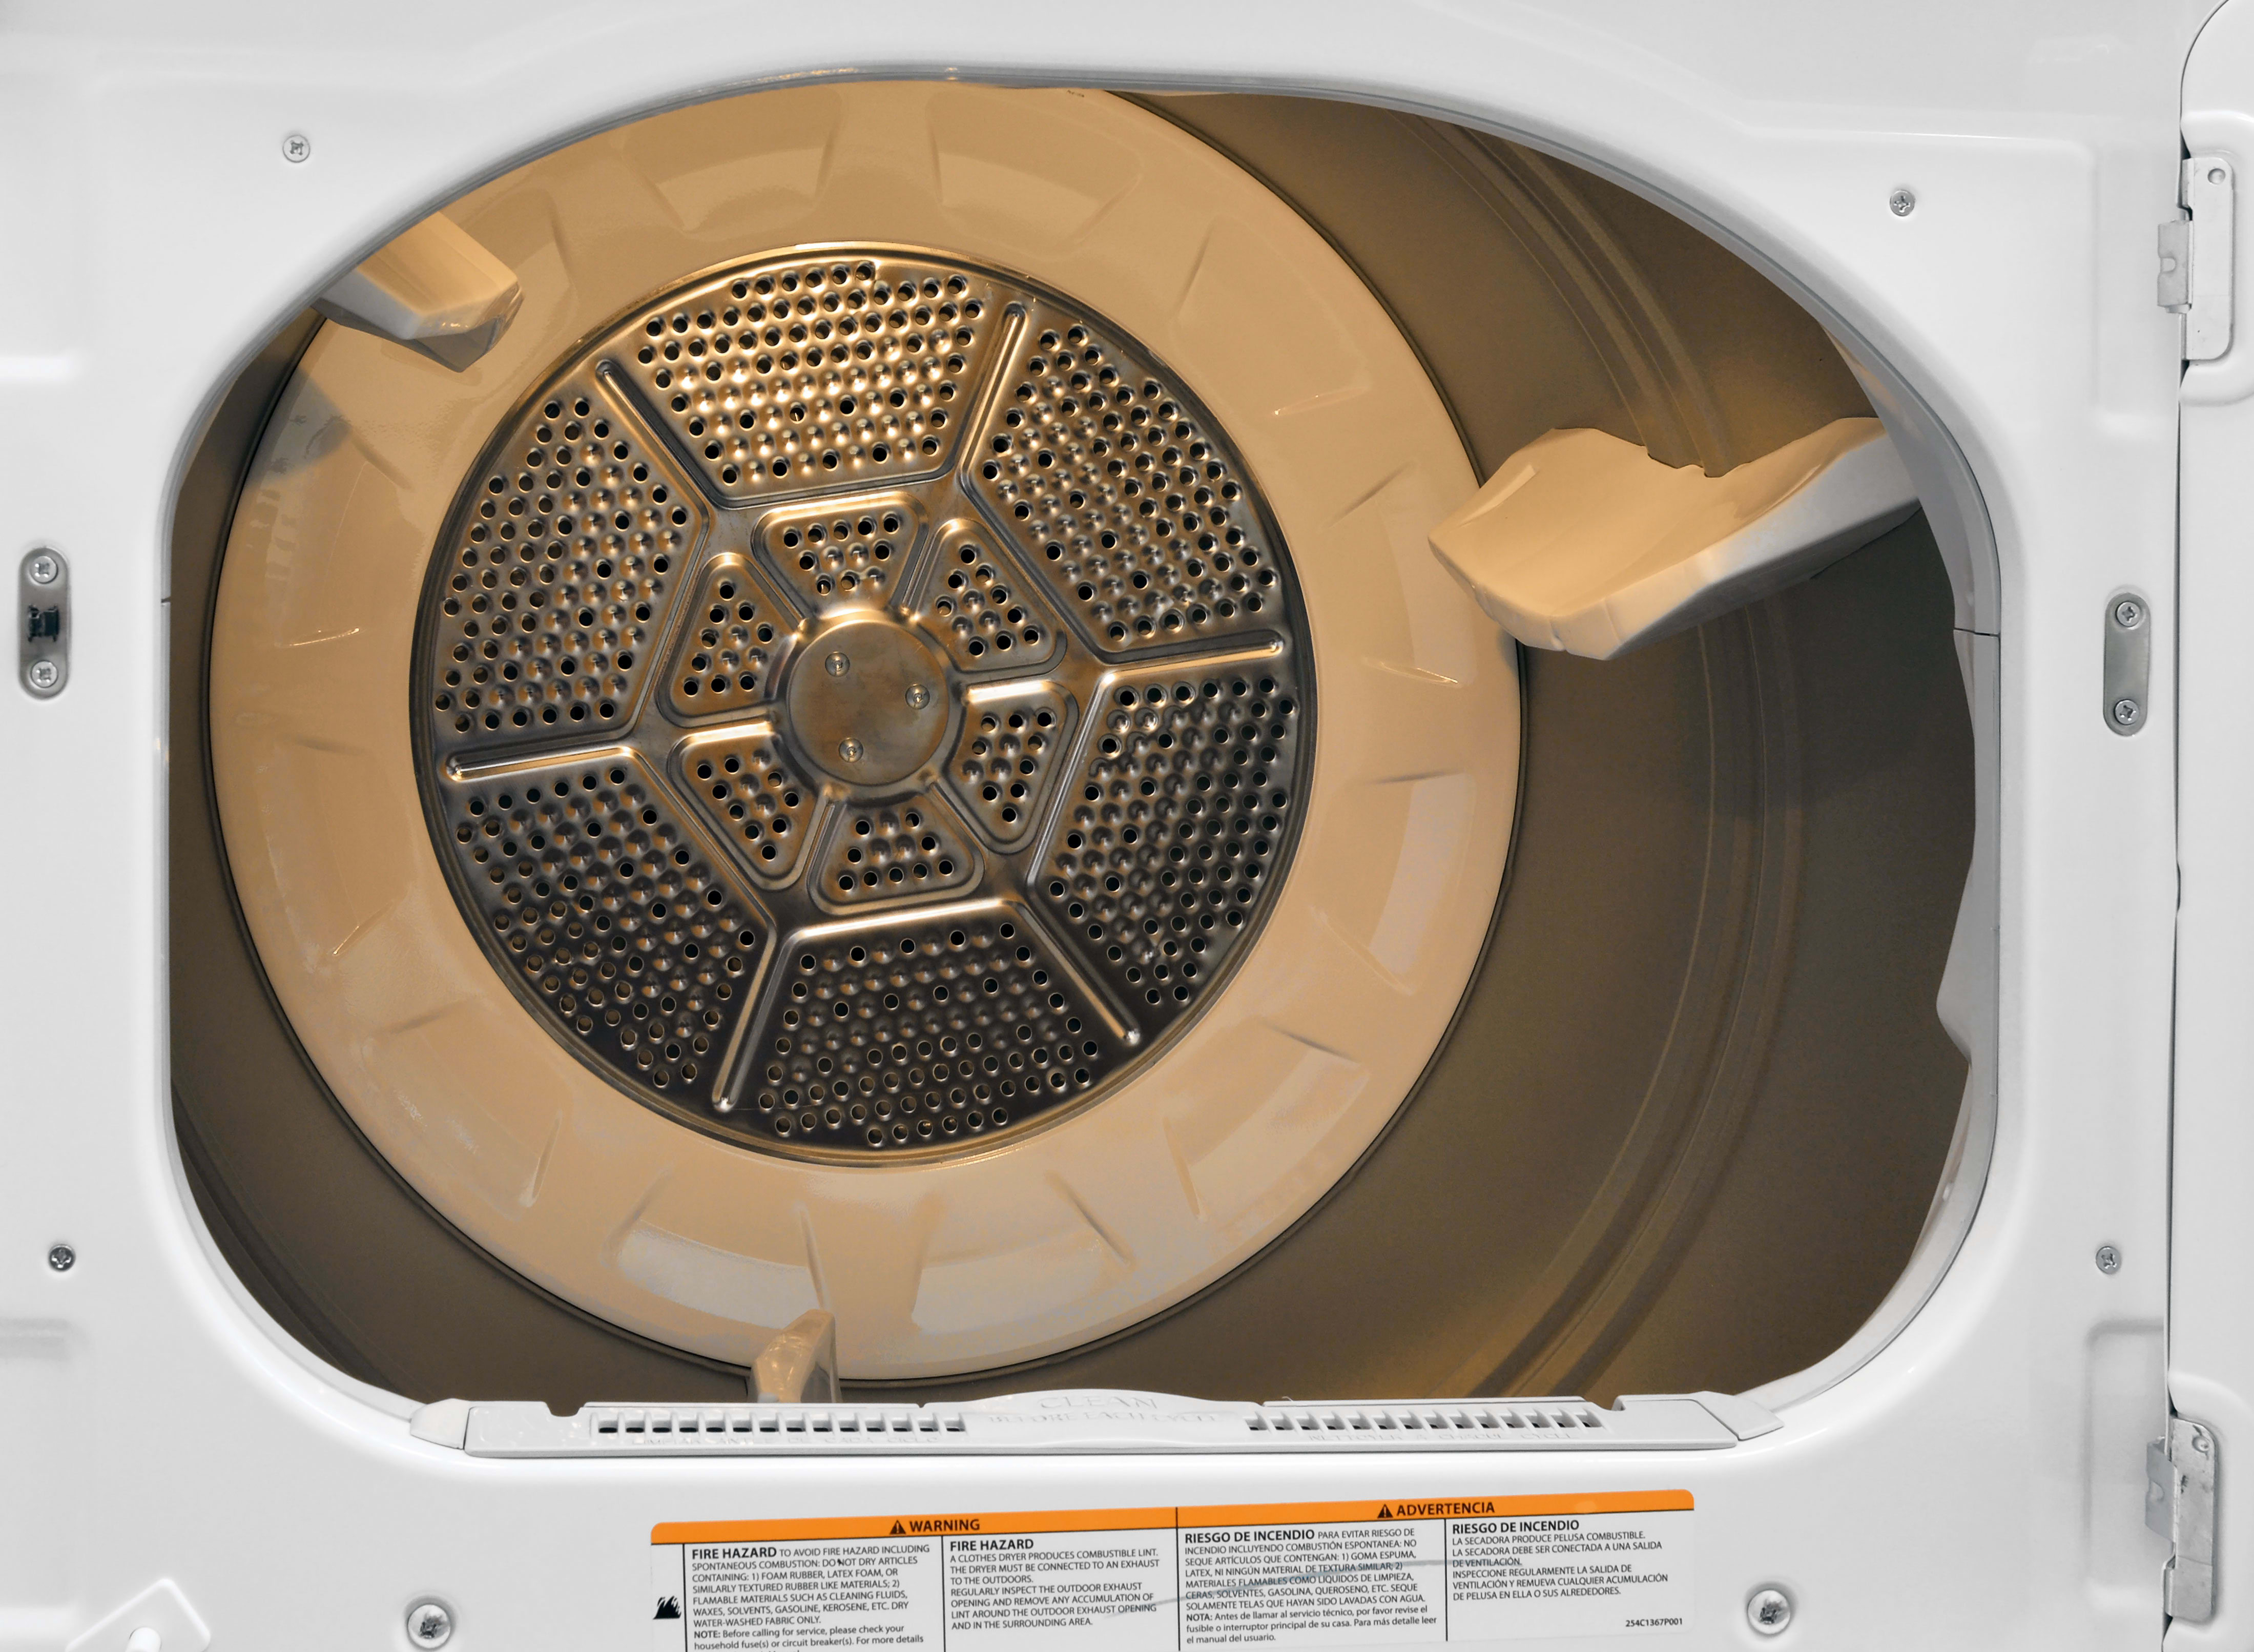 The GE GTD42EASJWW's 7.2-cu.-ft. drum is coated with aluminized alloy, and even features an interior light bulb.